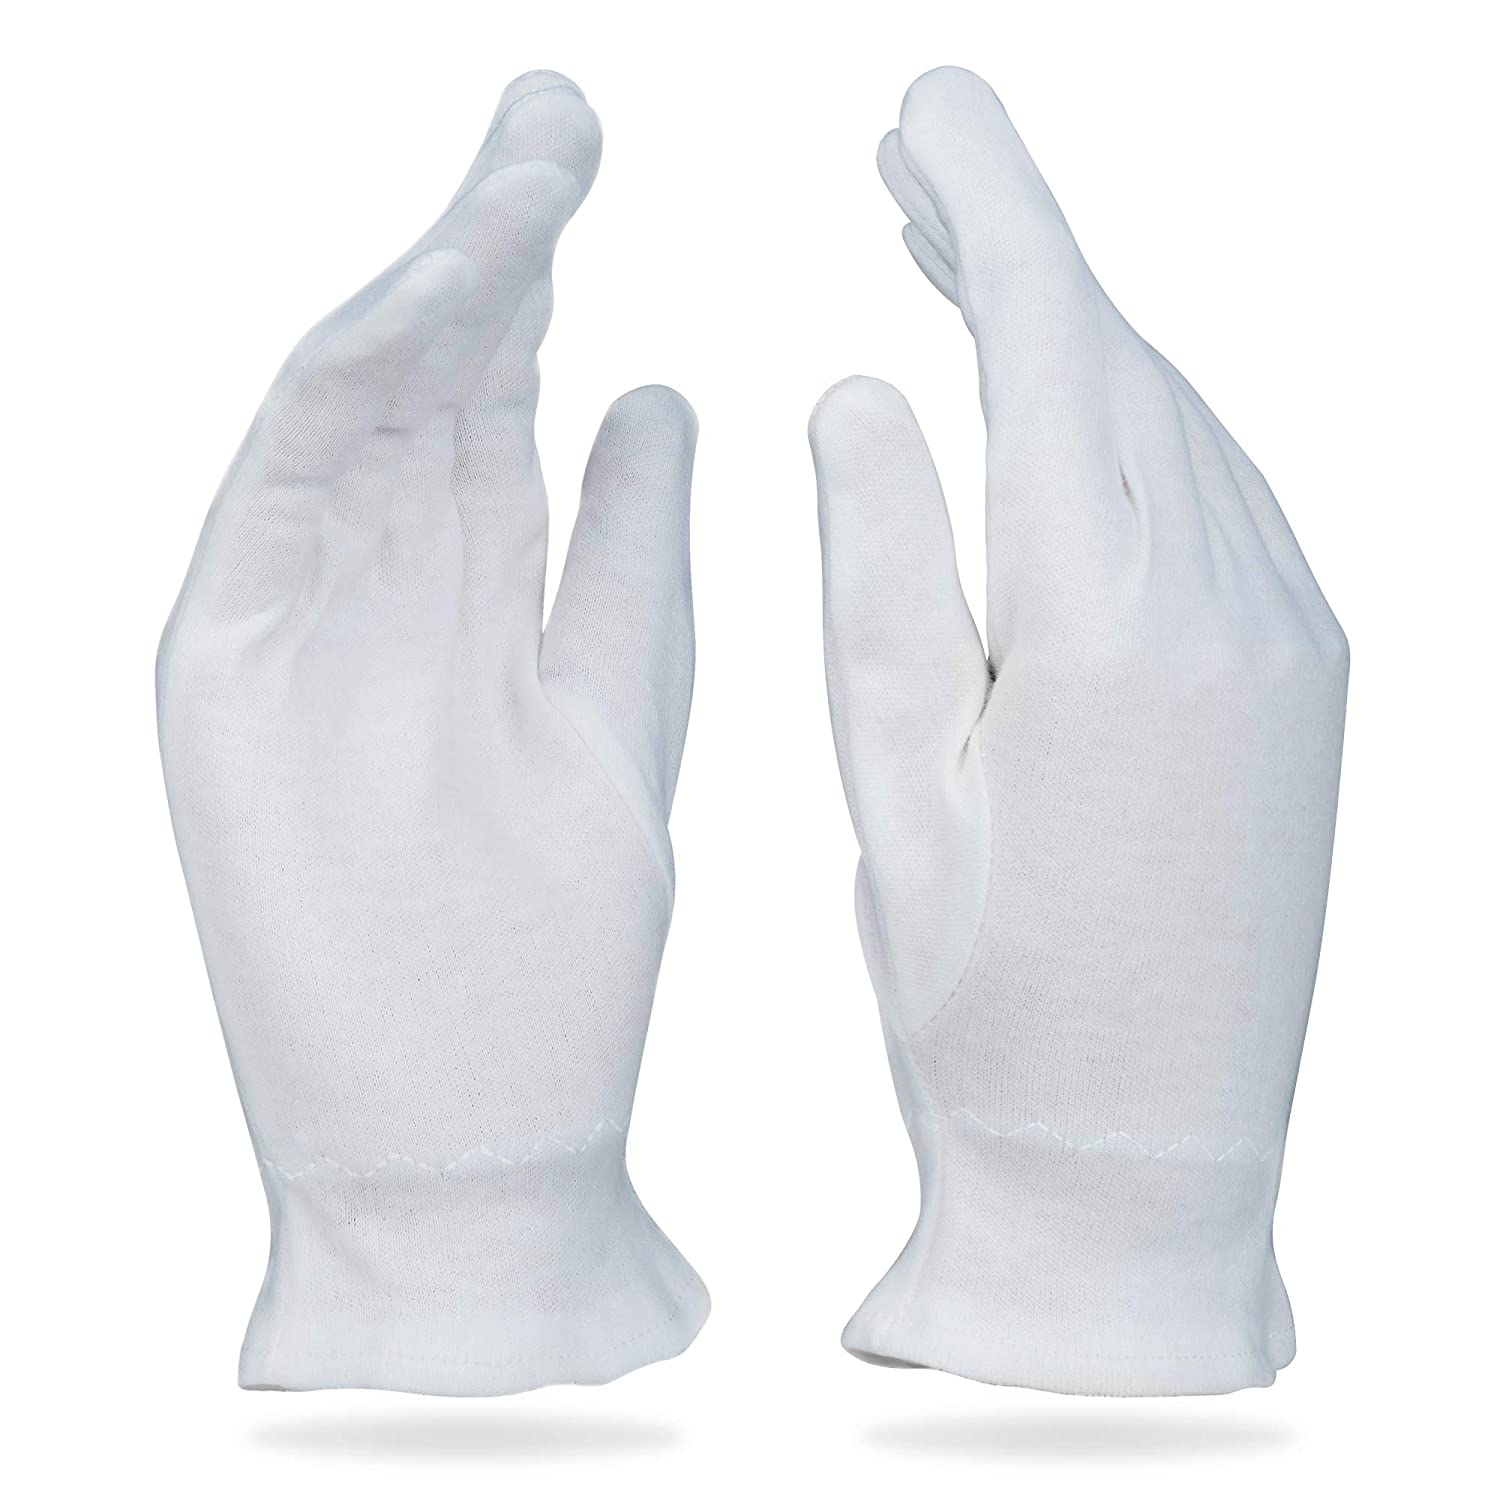 Care Wear White Cotton Gloves for Dry Hands - Overnight Eczema Moisturizing Lotion Treatment - 20 XL Jersey Glove Liners